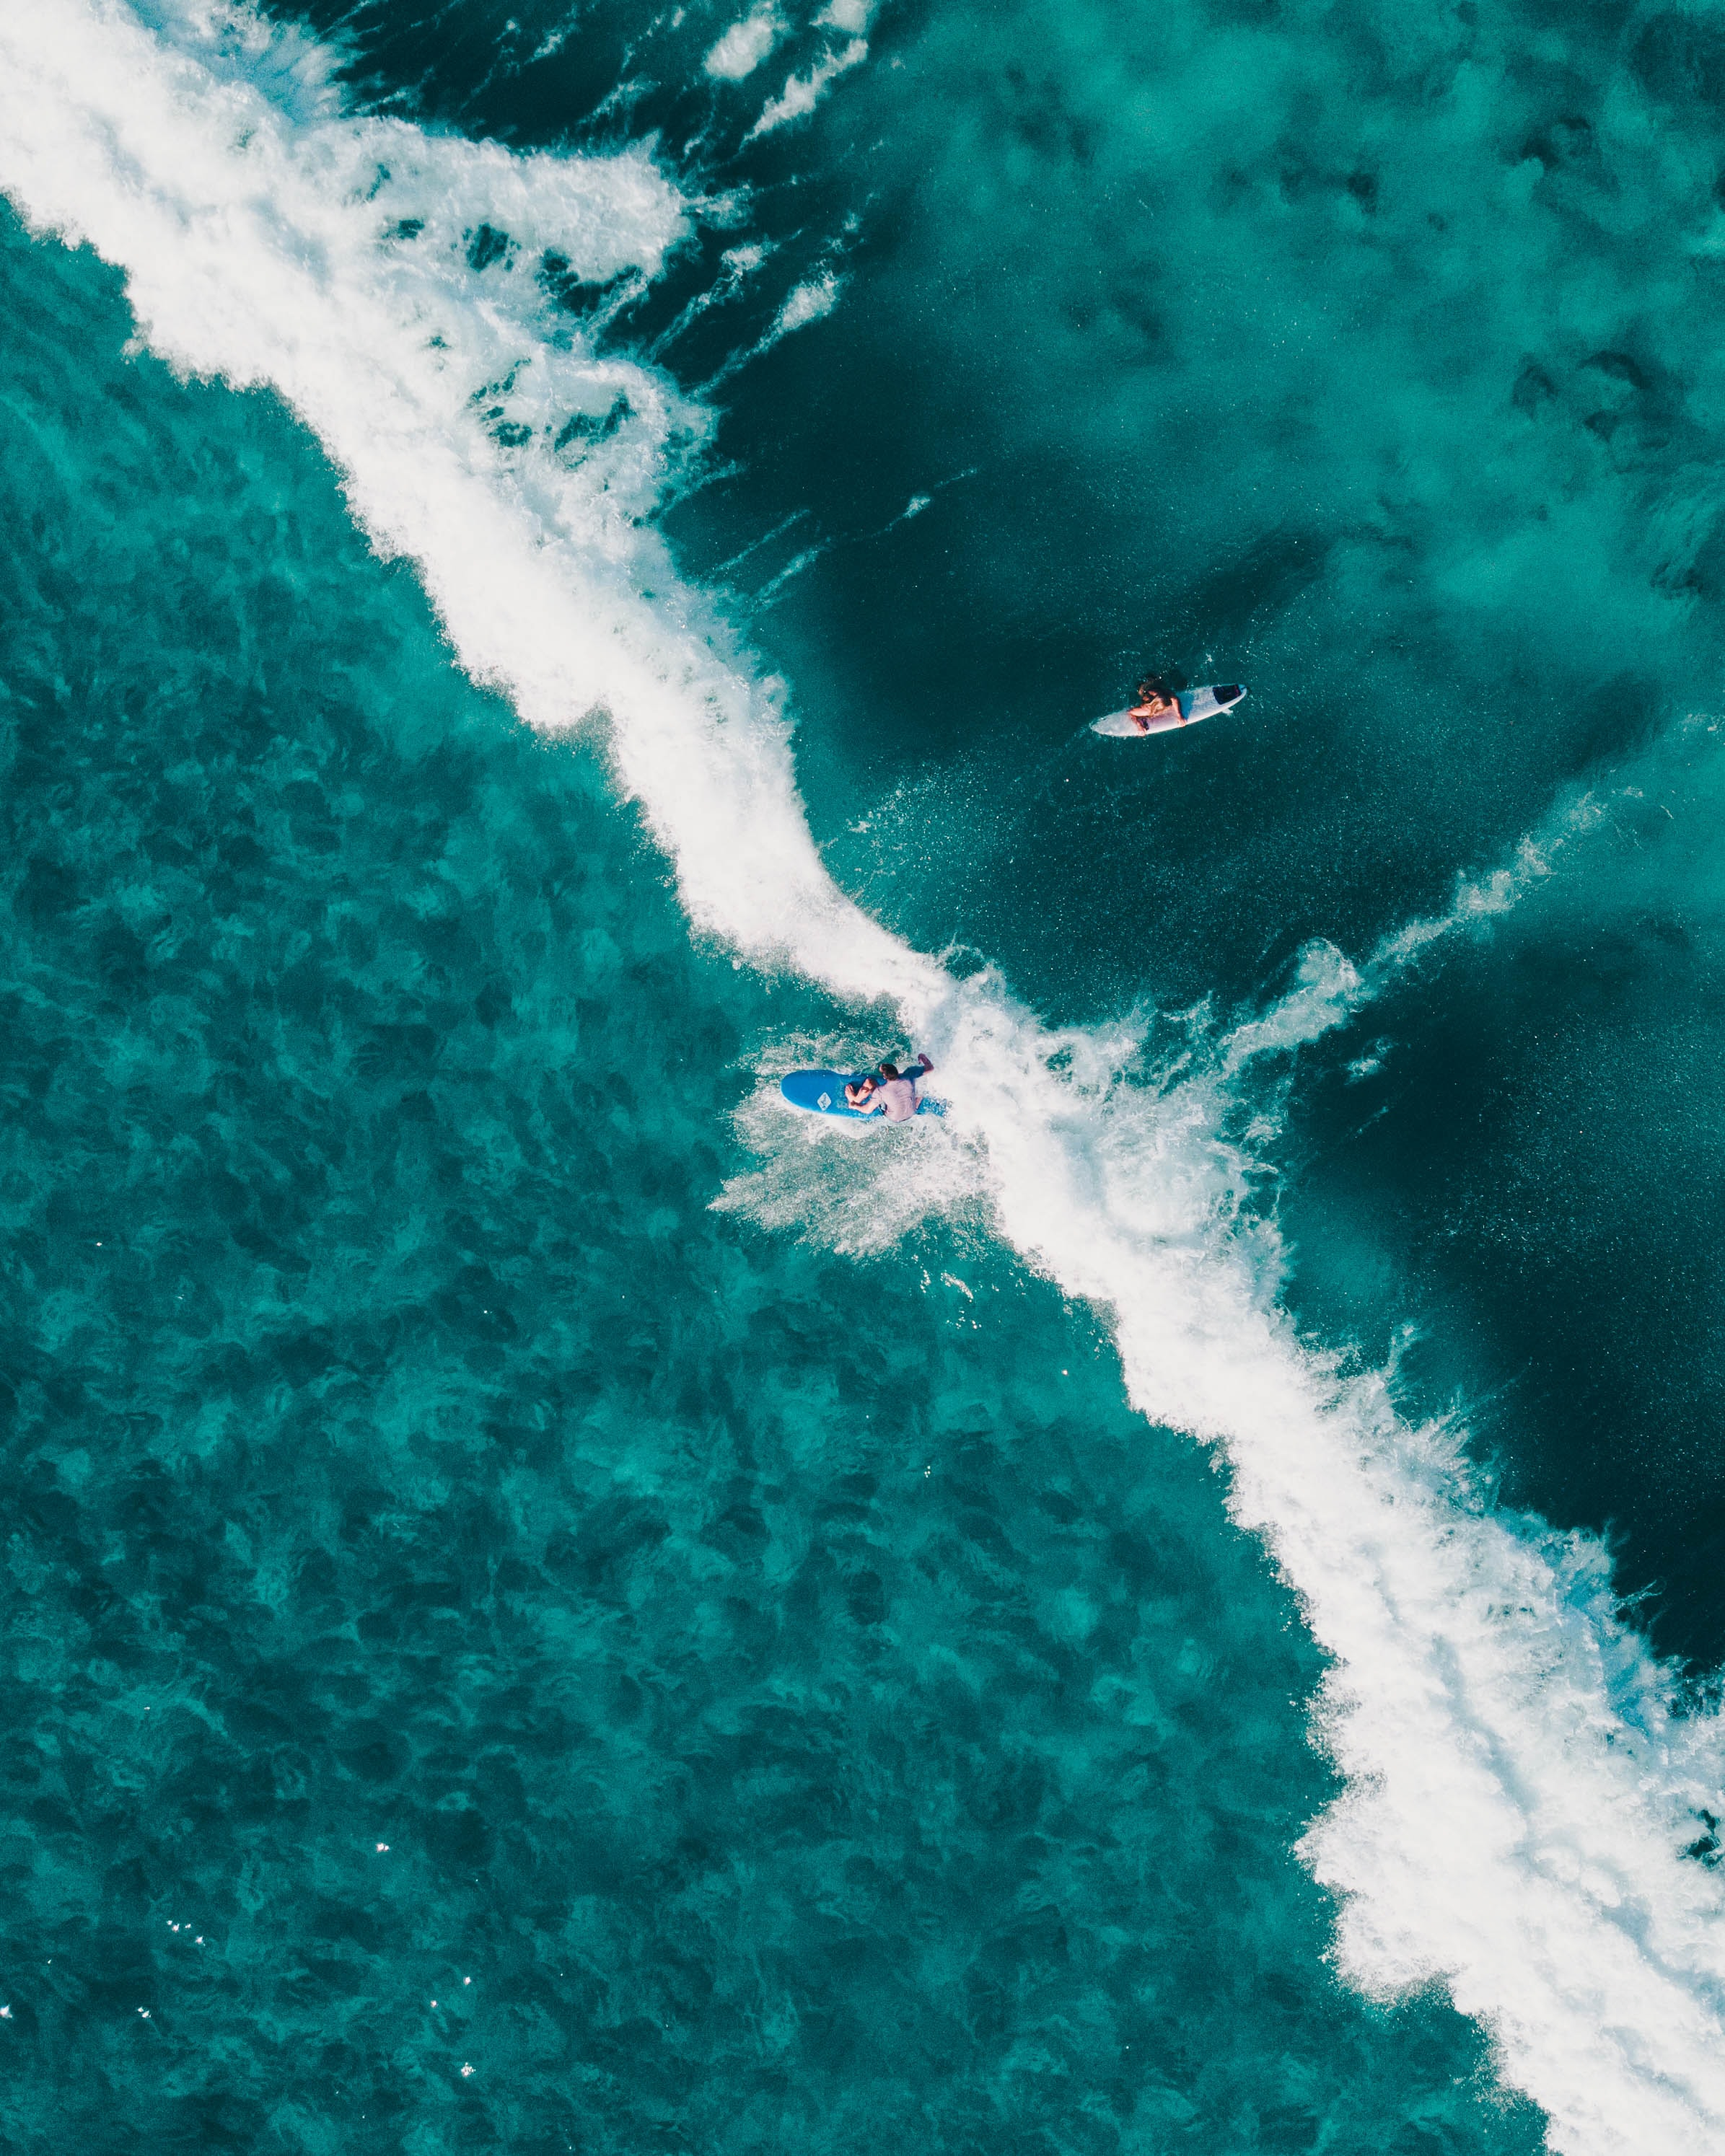 aerial view photo of two people surfing in body of water